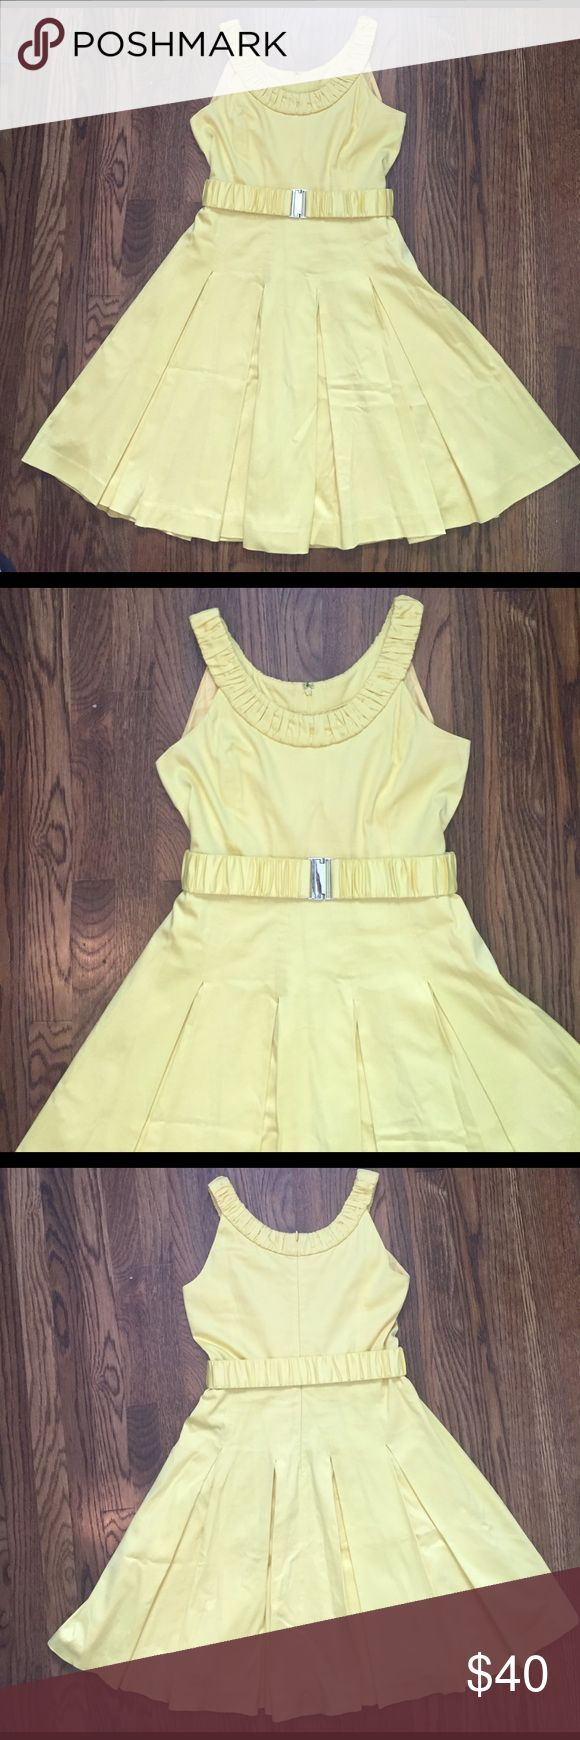 Calvin Klein Dress Perfect for Easter or a summer wedding! Heavy material, fully lined, inverted box pleat skirt. Really great condition, this is an excellent quality dress. One belt loop is unattached, pic included. I usually cut those off anyway, but left it in case you wanted to reattach it. Calvin Klein Dresses